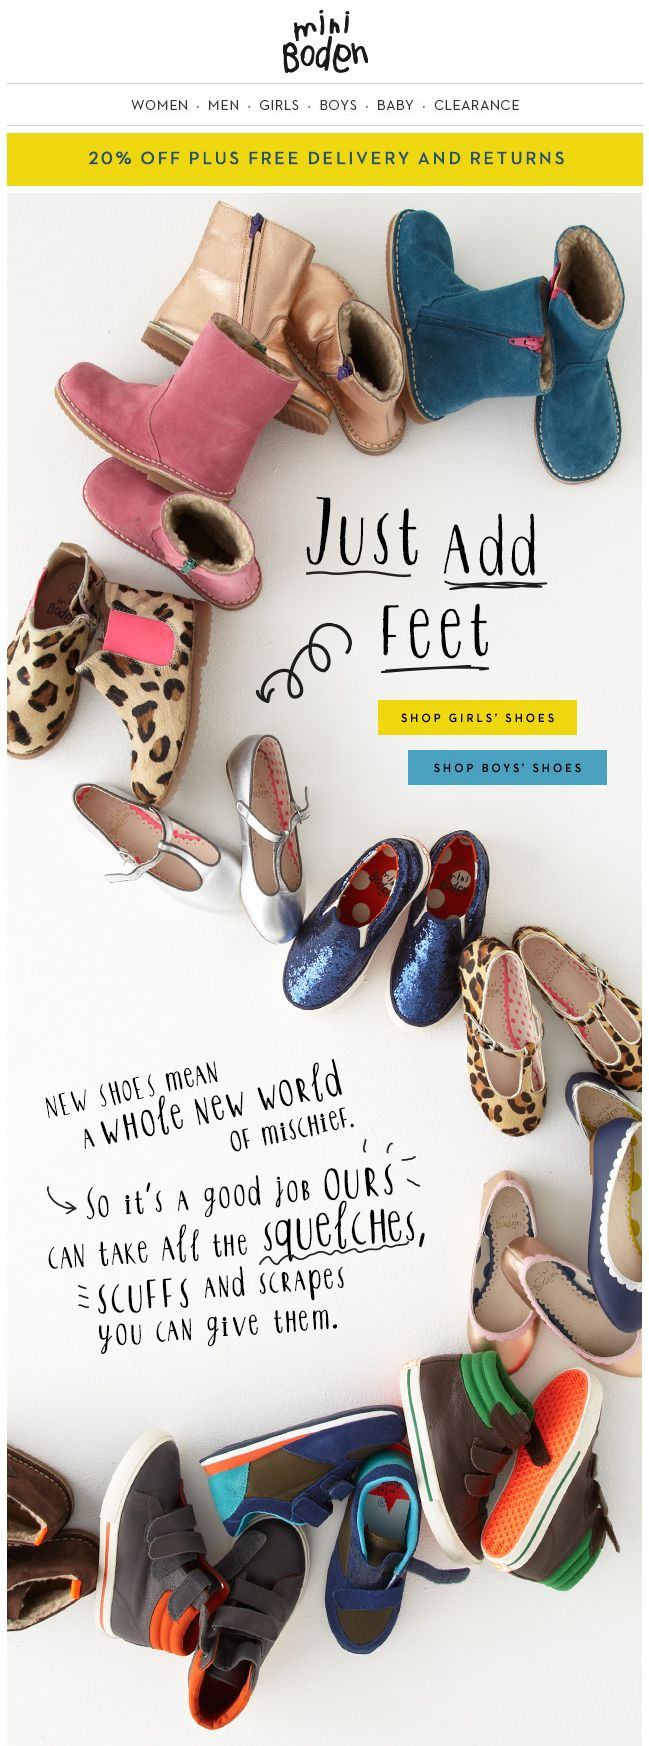 Boden email newsletter - shoes and boots